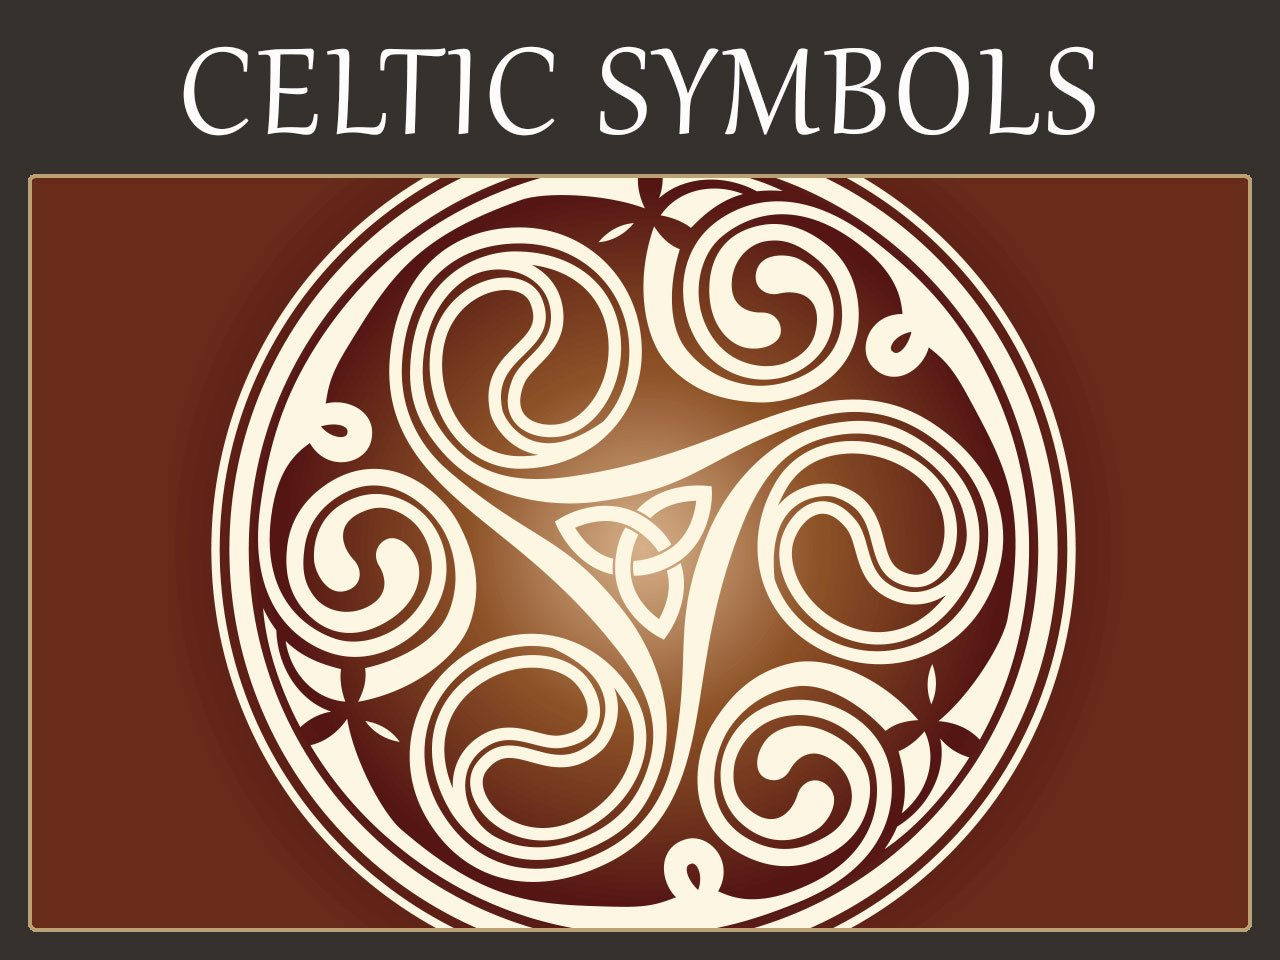 Symbols and meanings animals crystals dreams flowers native celtic symbols meanings 1280x960 biocorpaavc Gallery